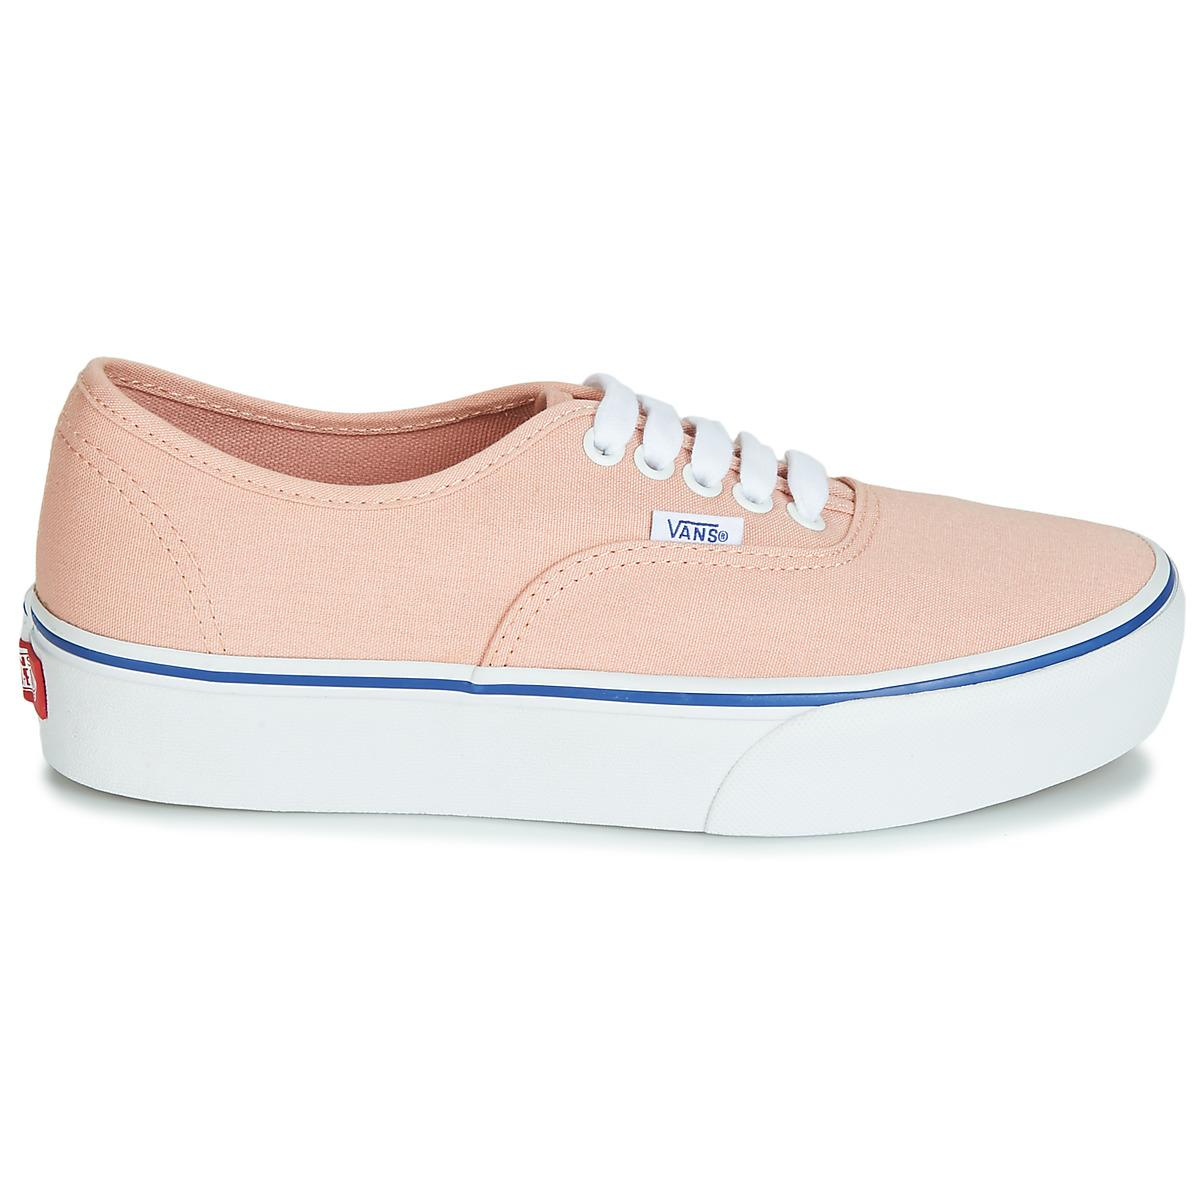 48053e2c02 Vans - Authentic Platform 2.0 Women s Shoes (trainers) In Pink - Lyst. View  fullscreen